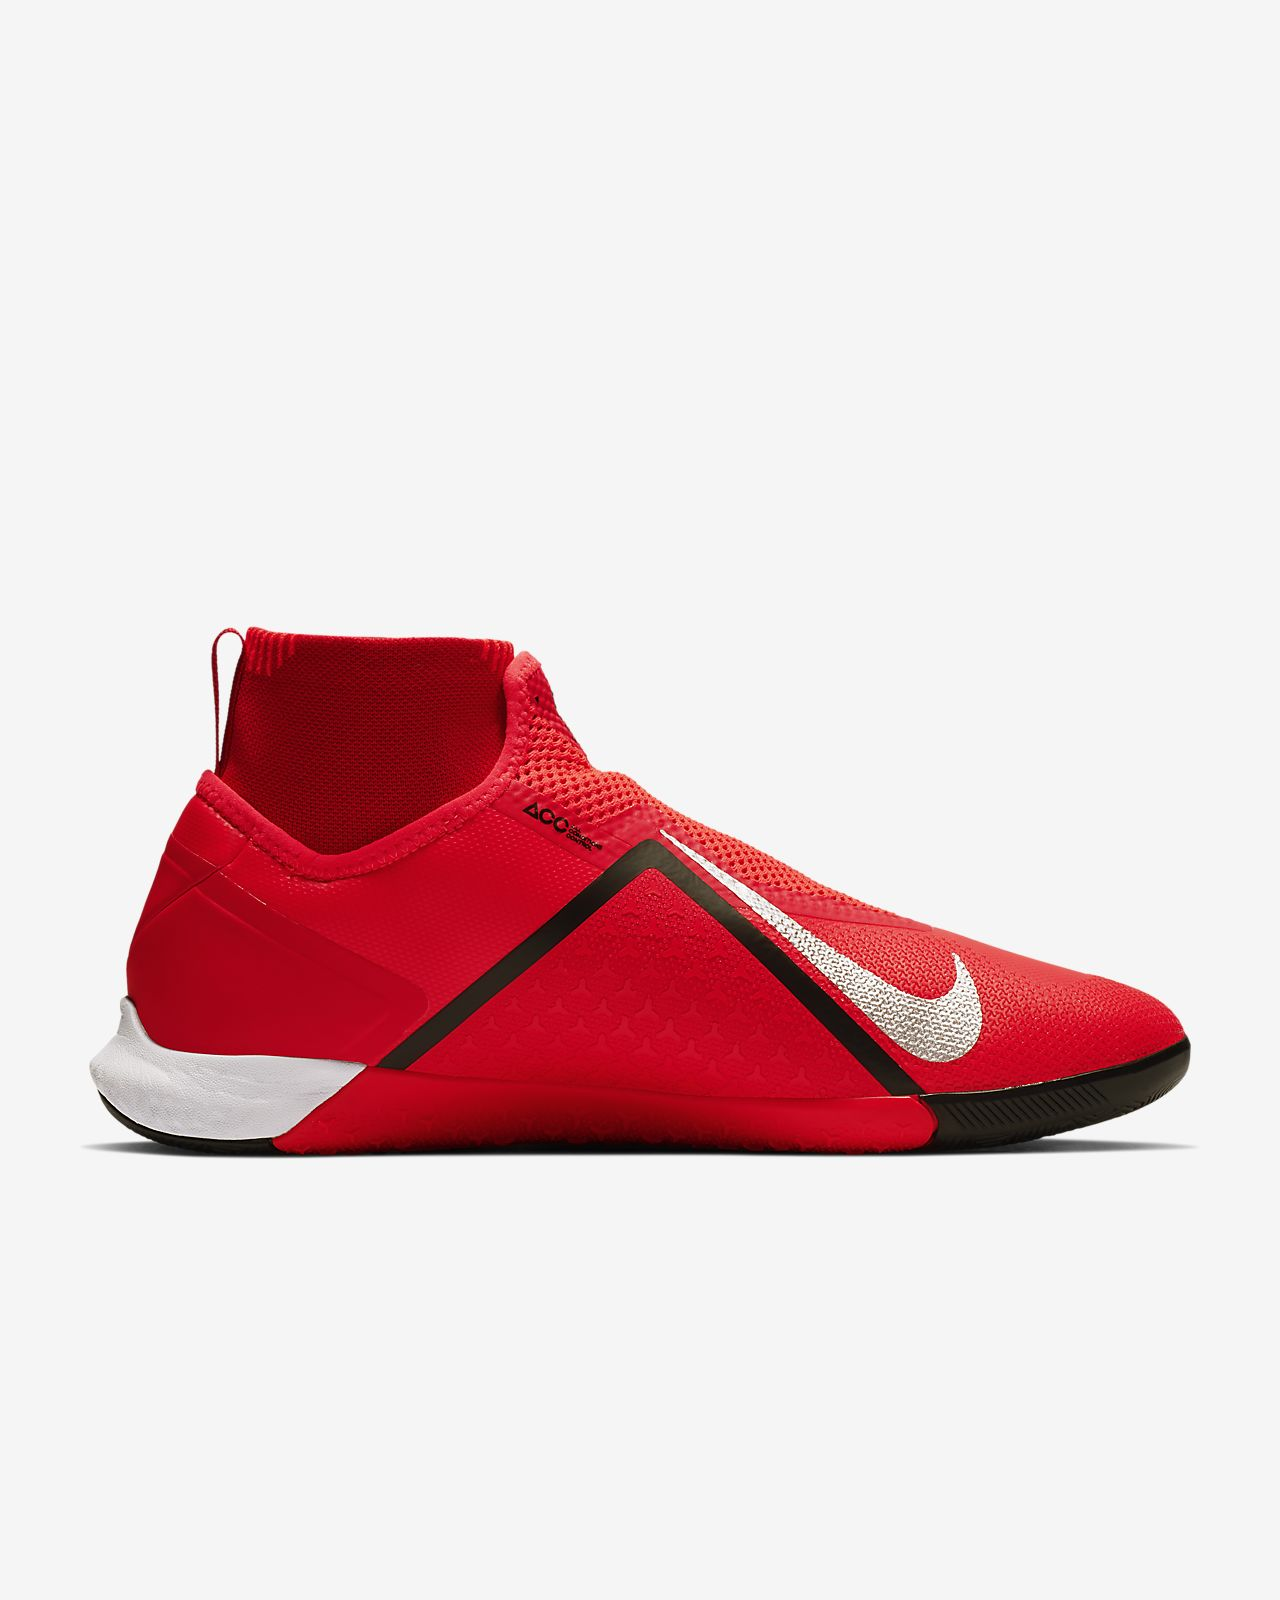 41bd07a06 ... Nike React PhantomVSN Pro Dynamic Fit Game Over IC Indoor Court  Football Boot